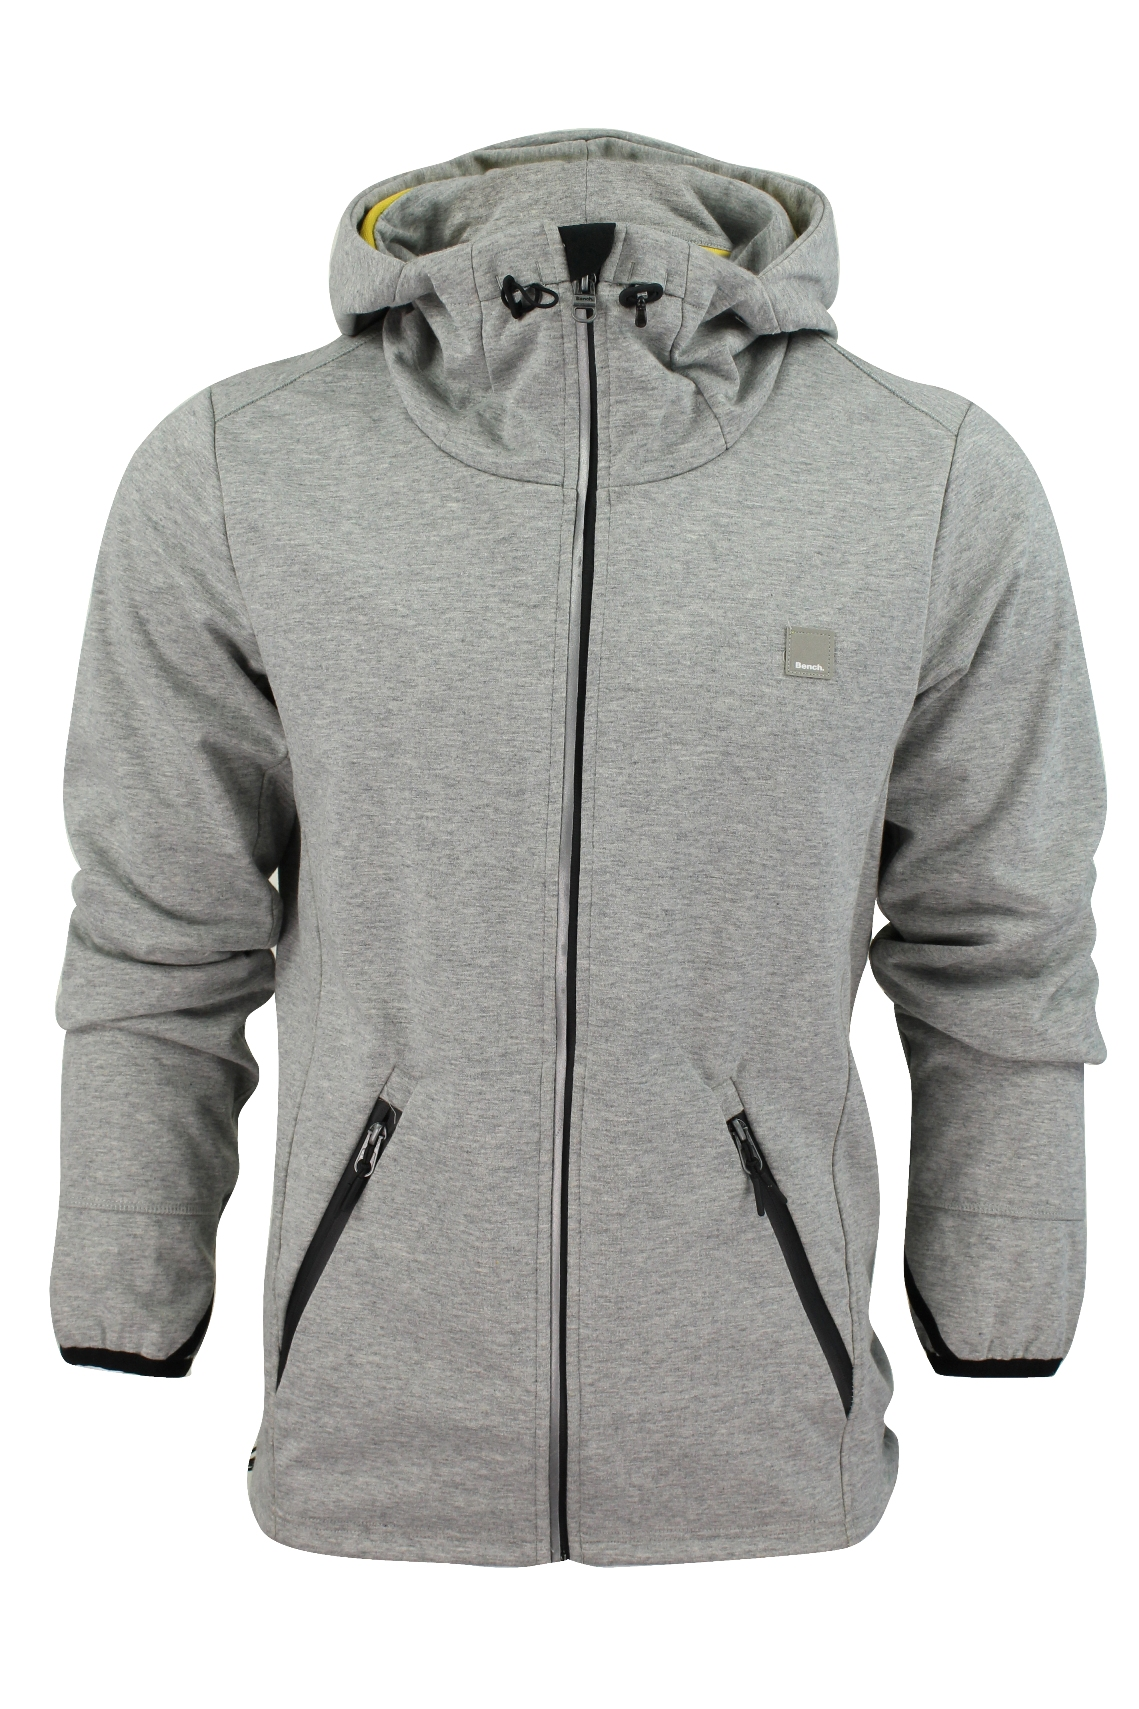 Mens Hoodie Jumper By Bench 39 Resilient 39 Ebay